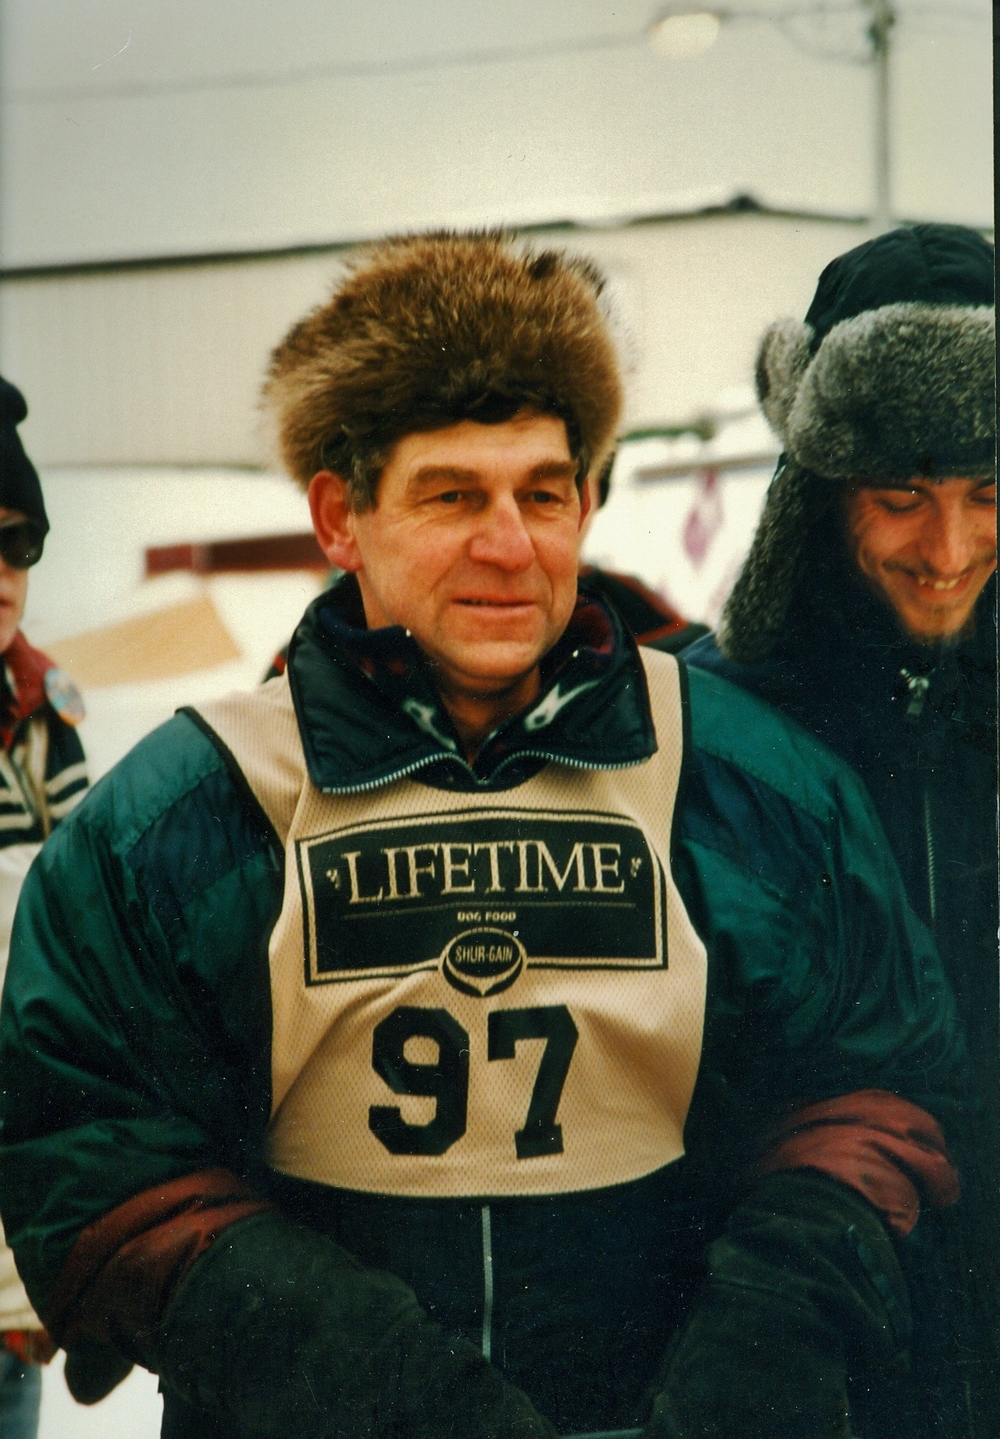 Snofest 1994 Ron Rodgers, Stirling, Ont.